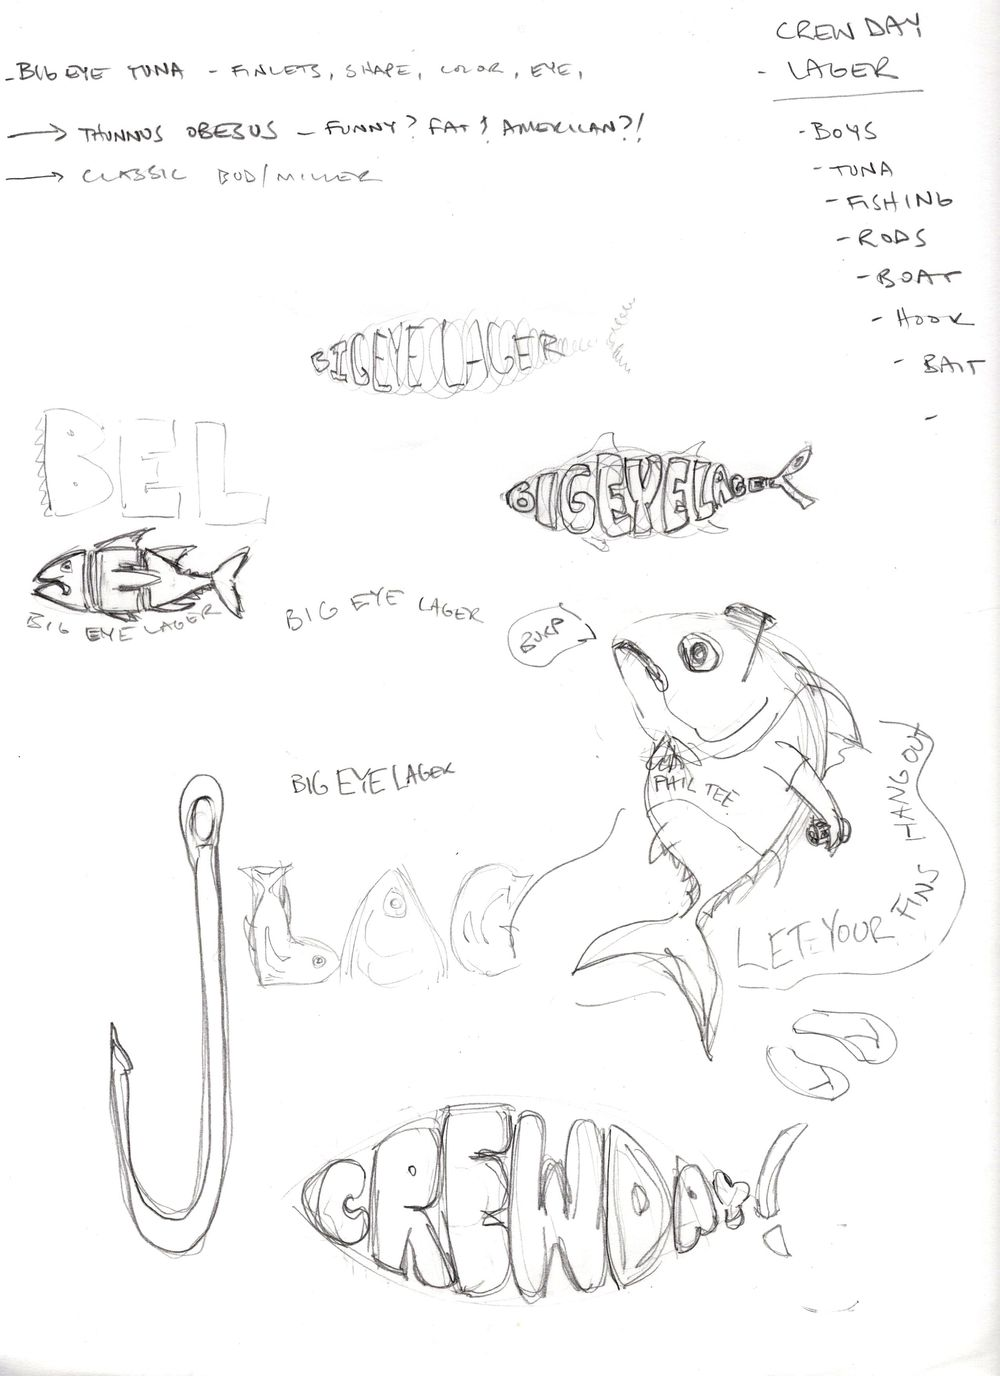 Big Eye Tuna Beers - Crew Day Lager Label (WIP) sketches - image 1 - student project